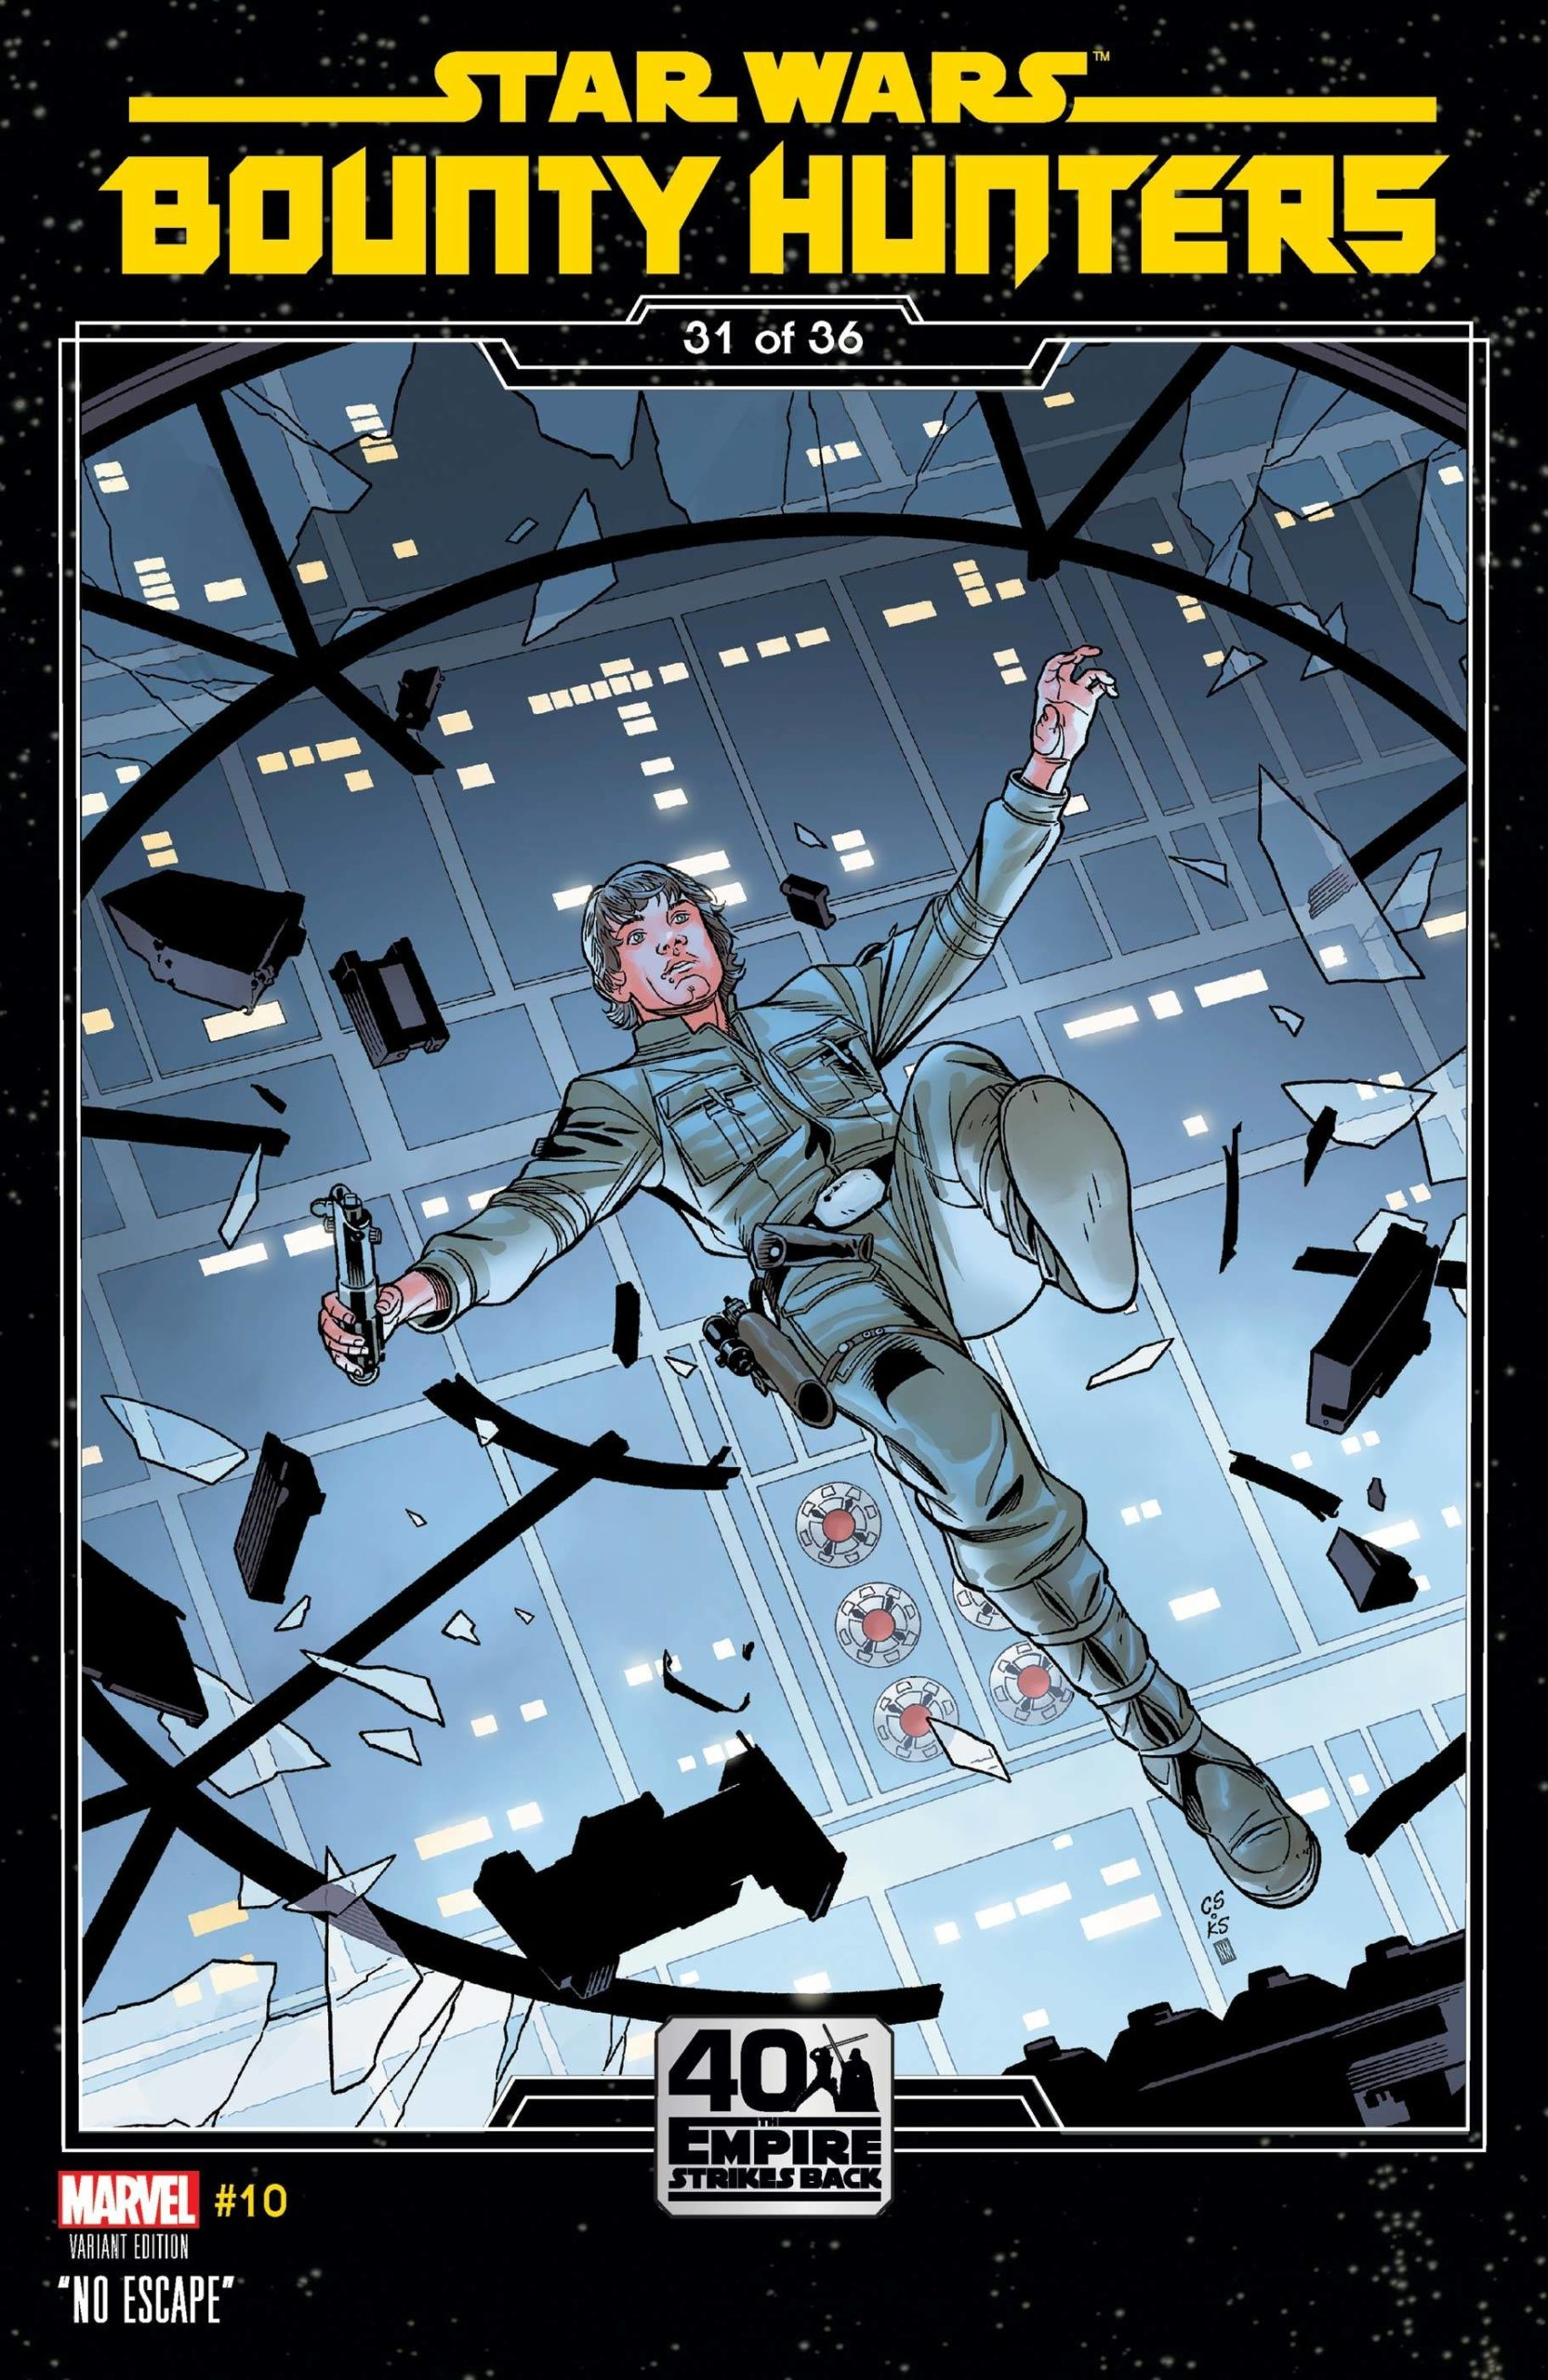 Bounty Hunters #10 (Chris Sprouse The Empire Strikes Back Variant Cover) (17.03.2021)